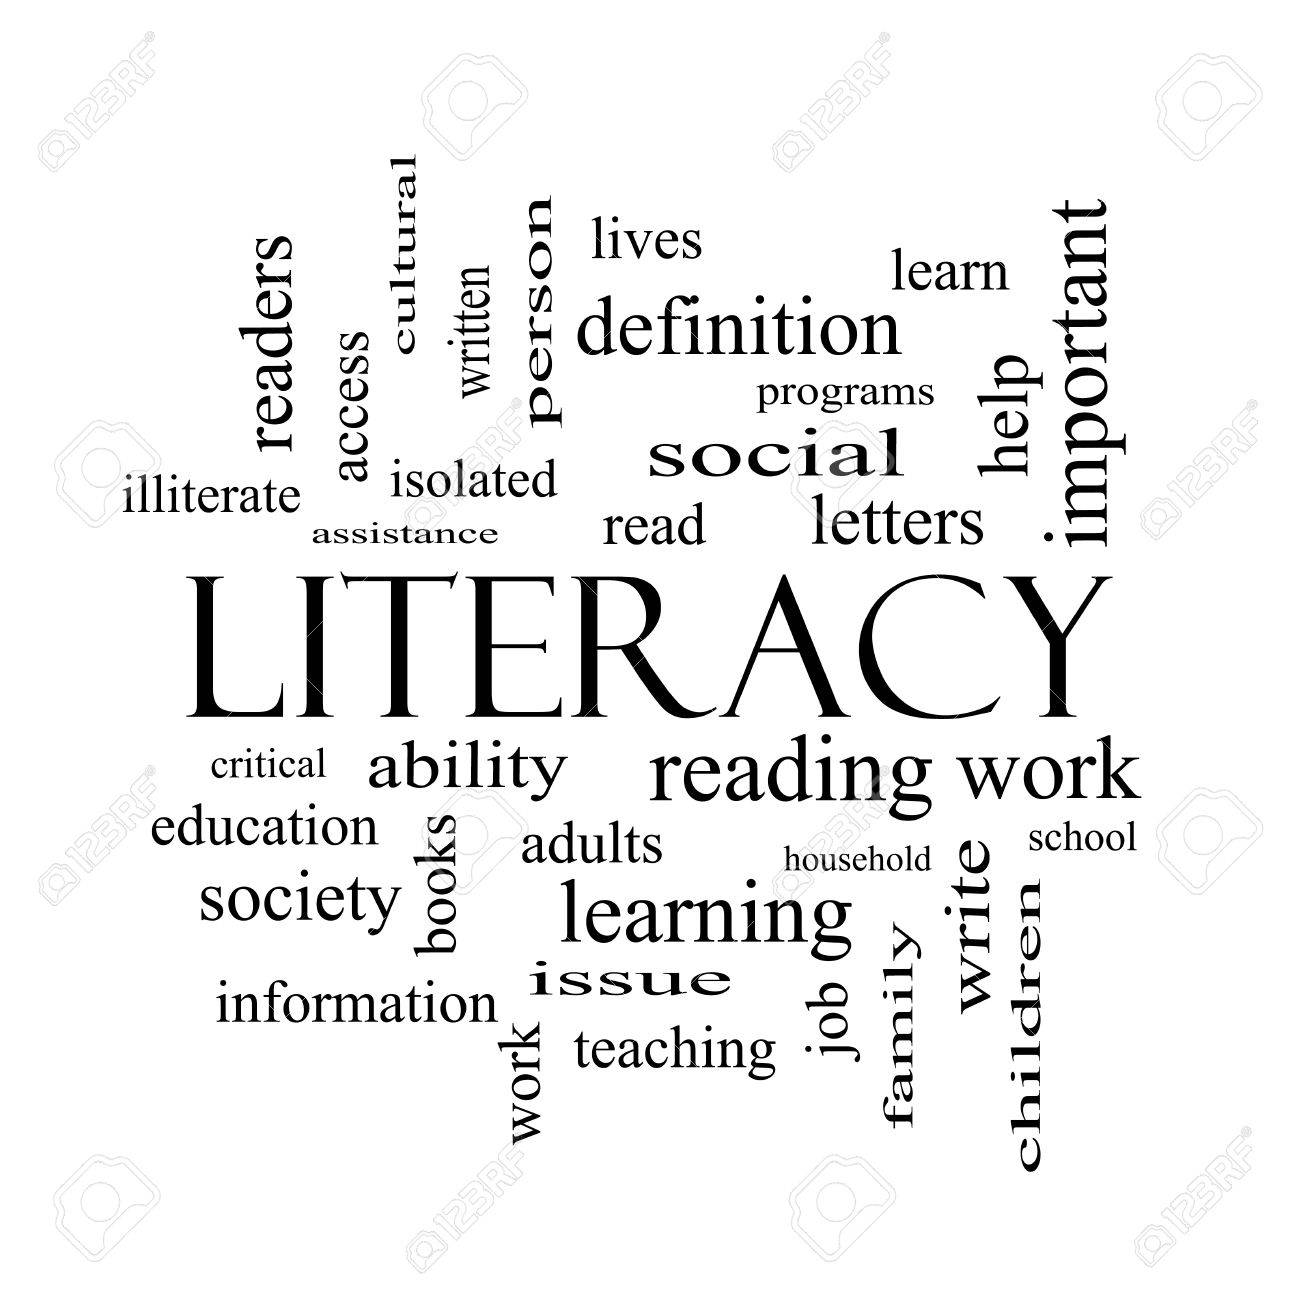 literacy word cloud concept in black and white with great terms